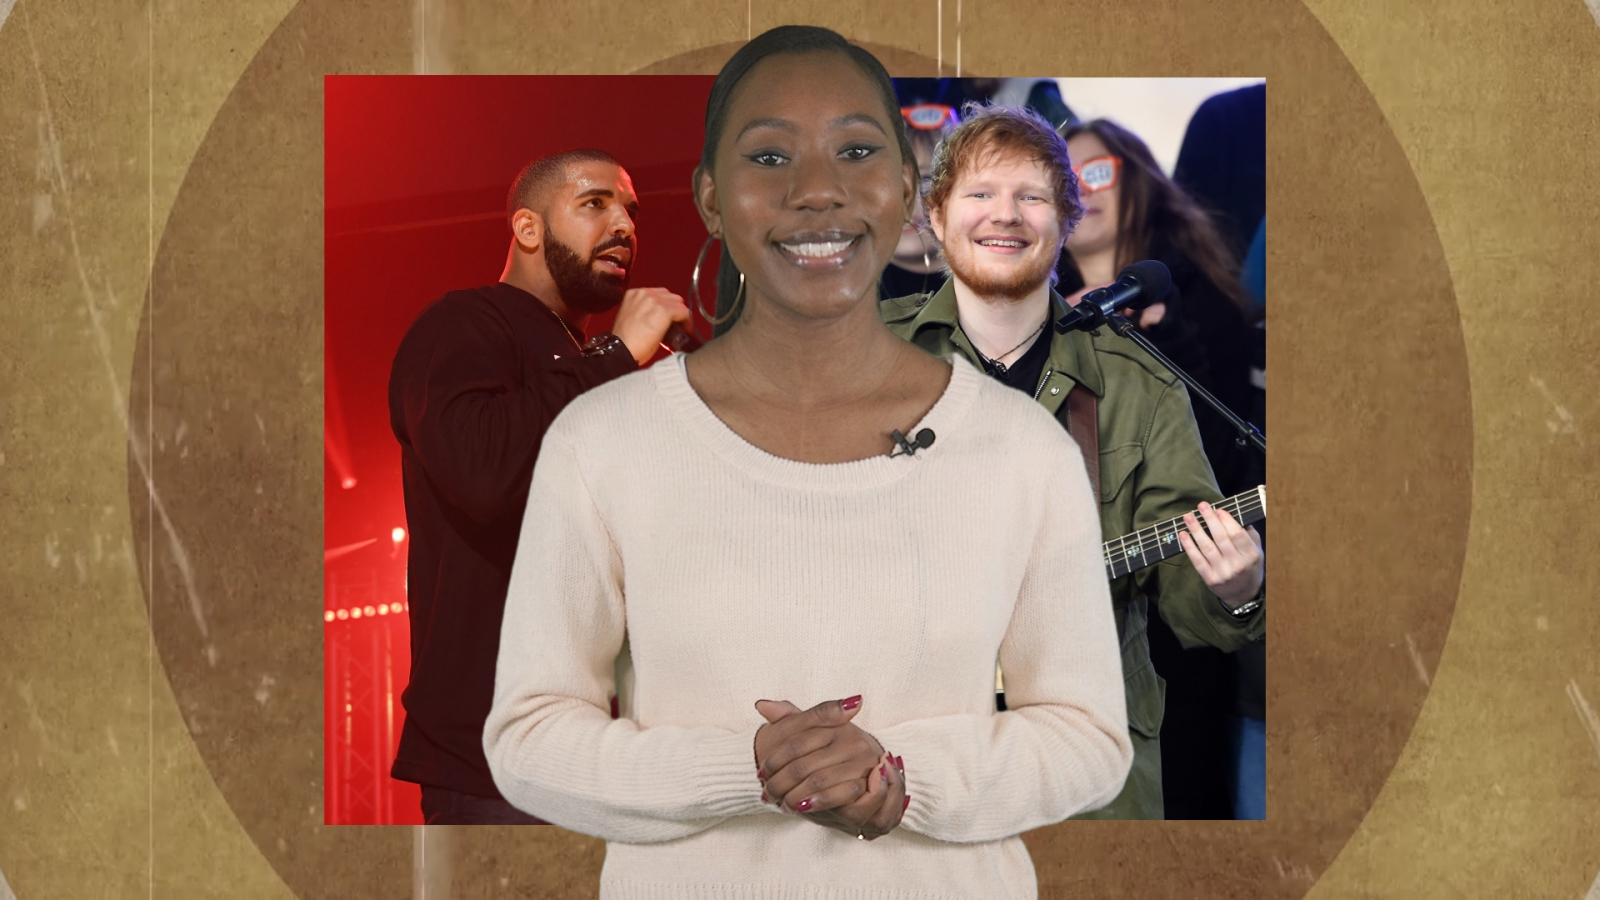 Music Minute: Ed Sheeran dominates UK charts, Drake to release new album